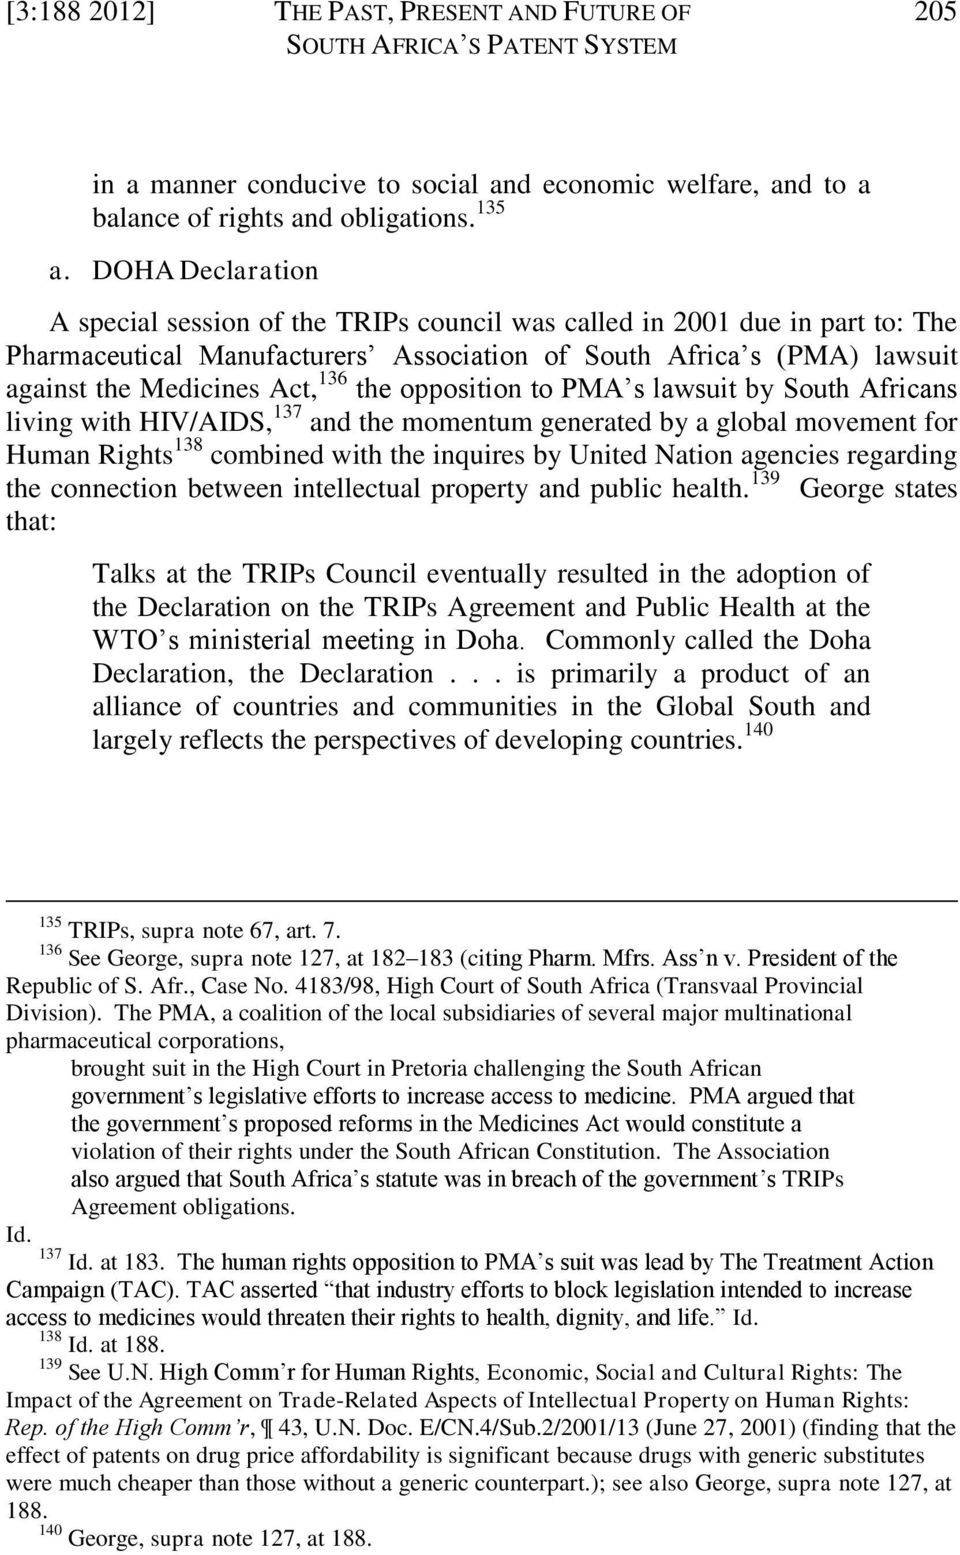 the opposition to PMA s lawsuit by South Africans living with HIV/AIDS, 137 and the momentum generated by a global movement for Human Rights 138 combined with the inquires by United Nation agencies